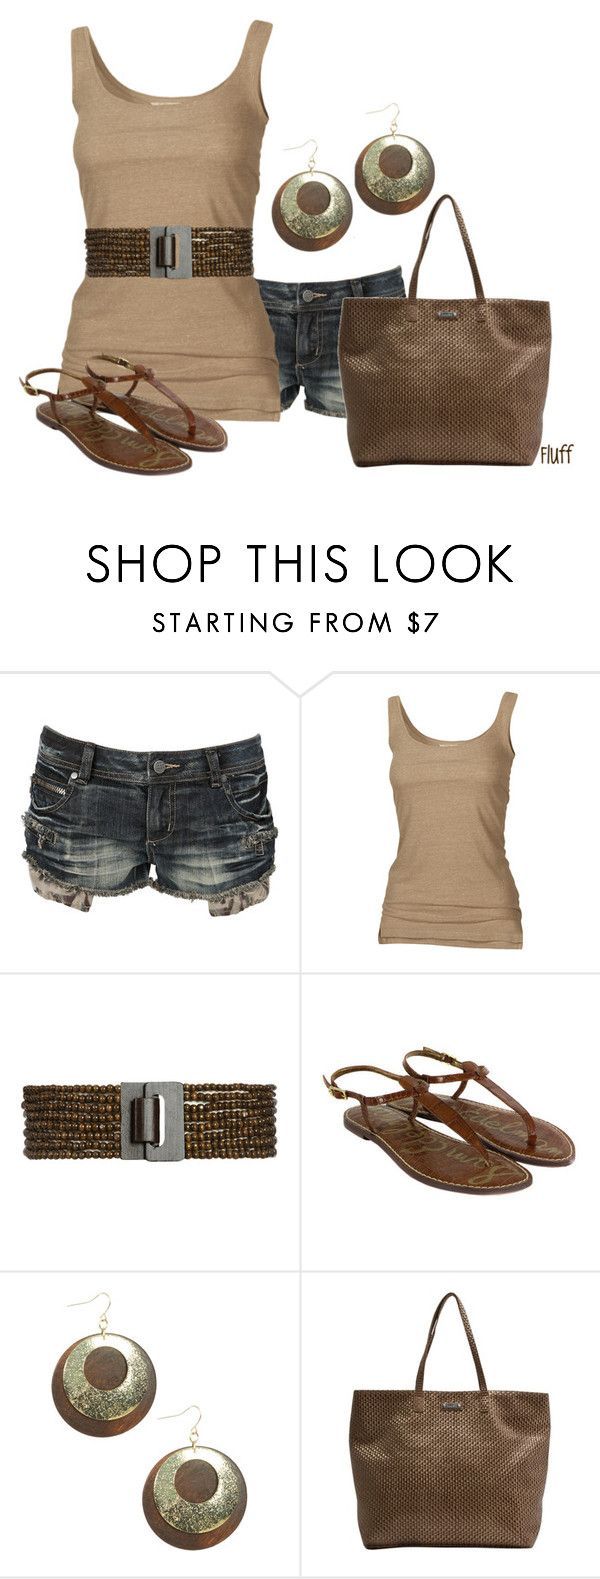 """""""wooden nickle"""" by fluffof5 ❤ liked on Polyvore featuring Crafted, Fat Face, Wet Seal, Sam Edelman and MANGO"""